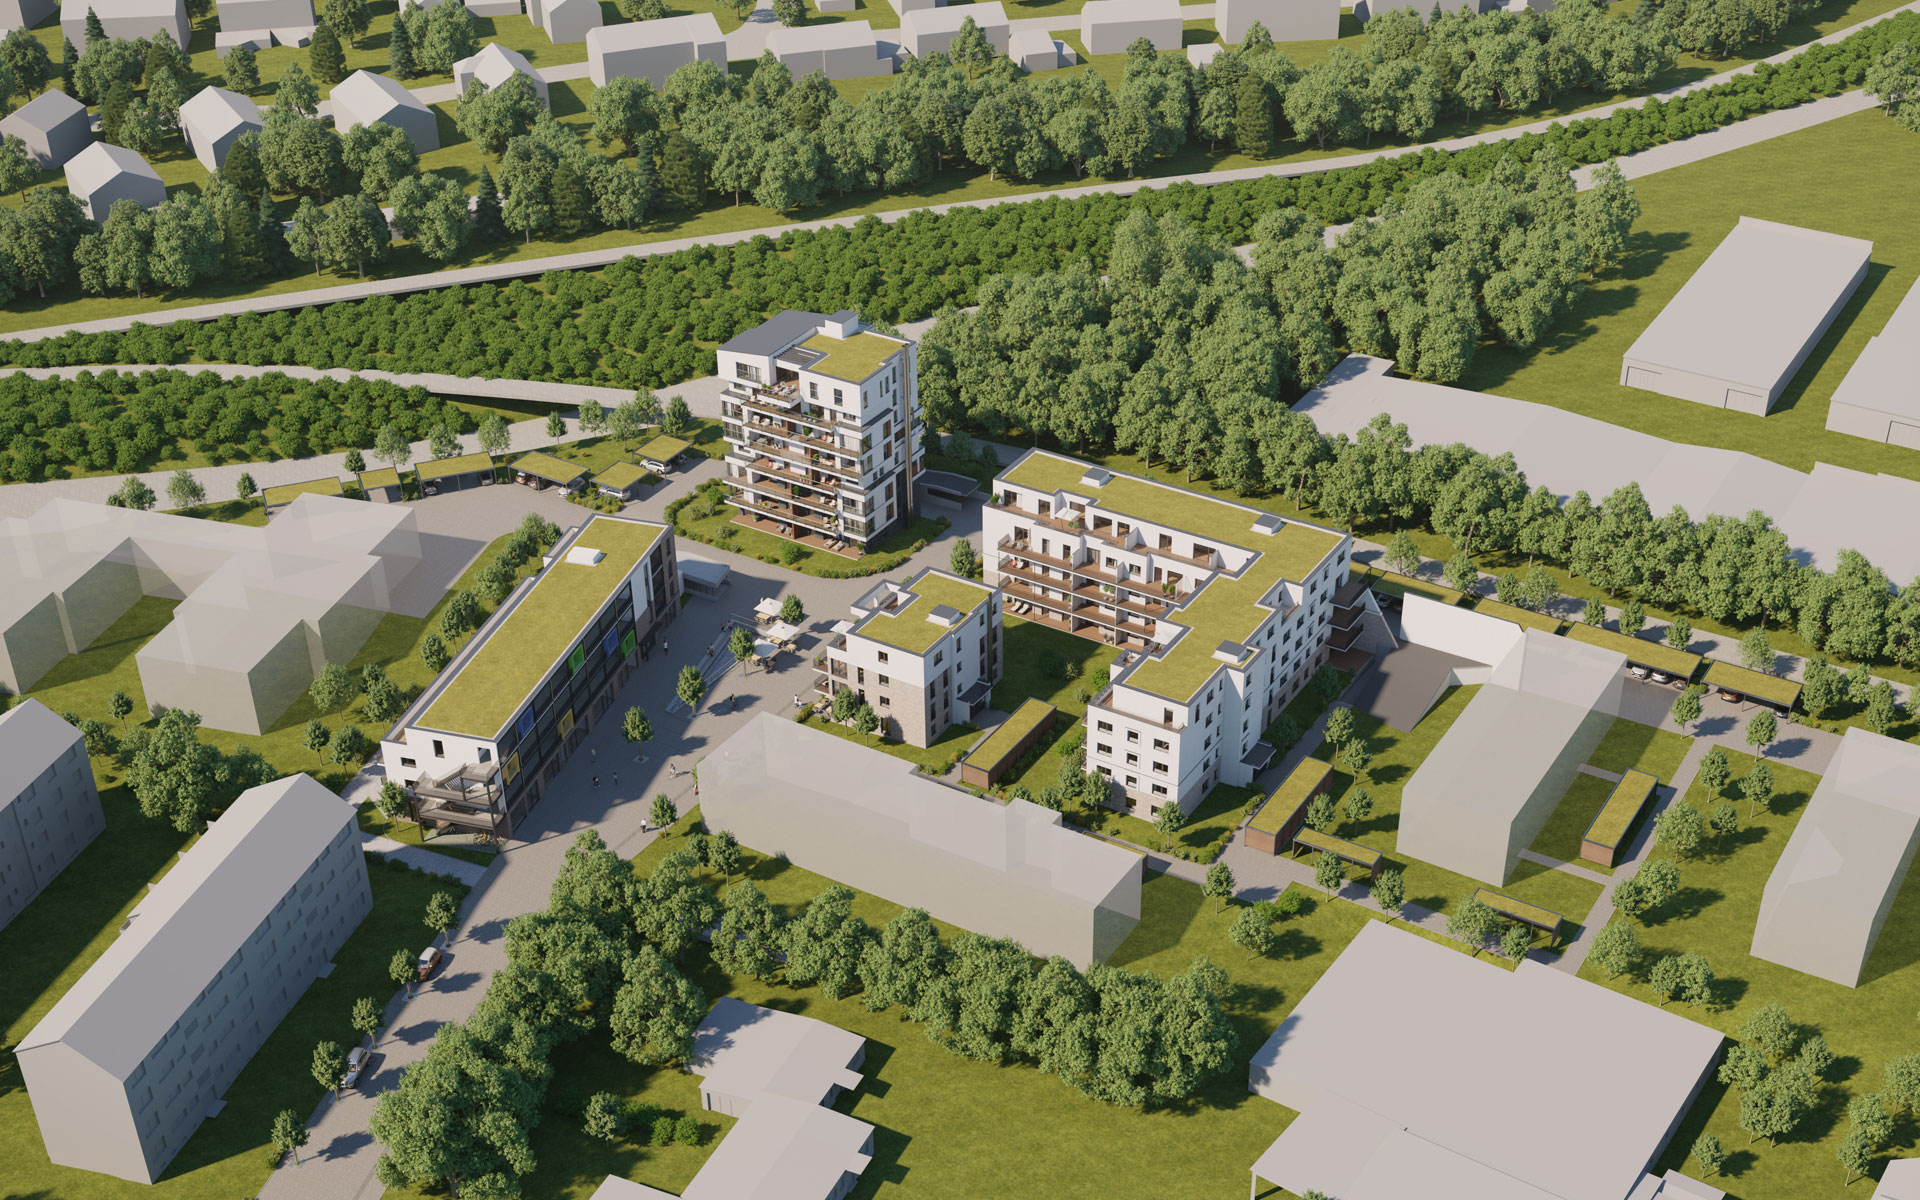 OPUS Marketing / Immobilienmarketing / hugo49 Bayreuth / Visualisierung / Rendering